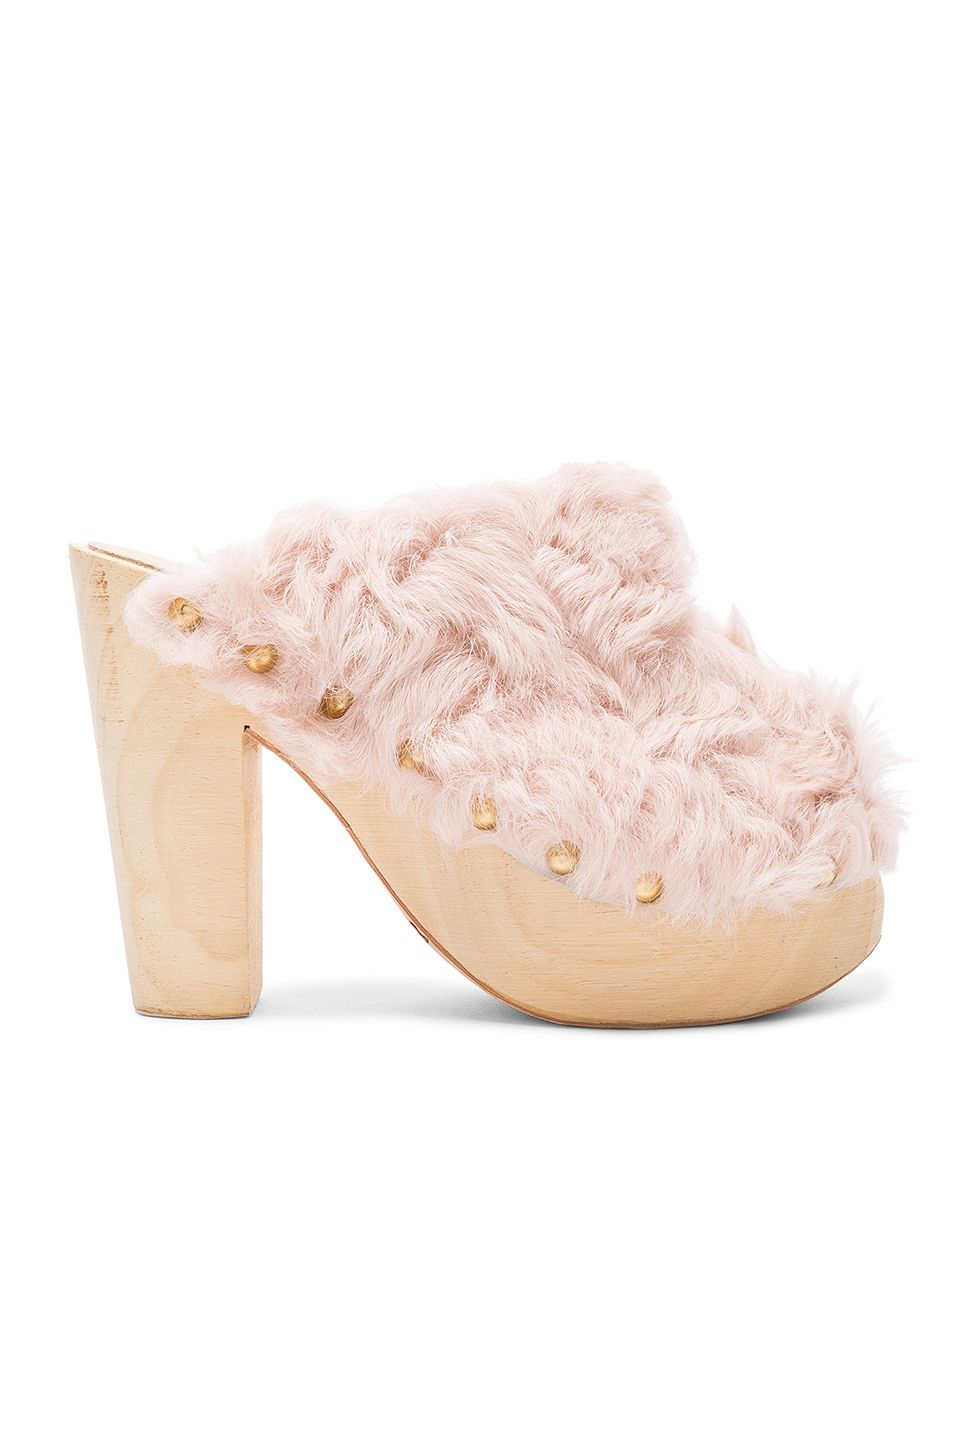 2469d51595605 Image 1 of Brother Vellies FWRD Exclusive Curly Rabbit Fur Clogs in ...